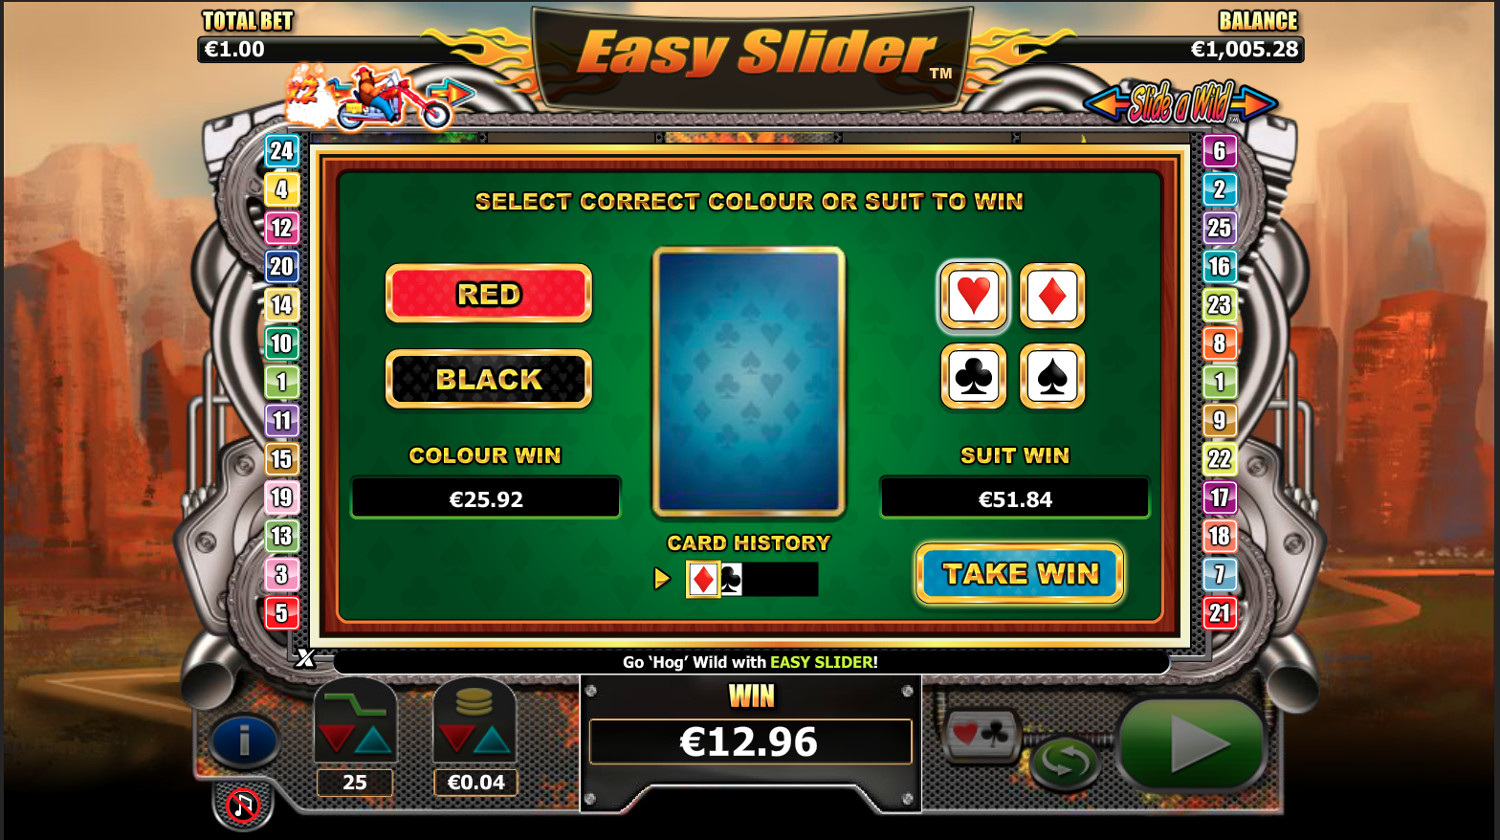 Easy Slider gamble feature